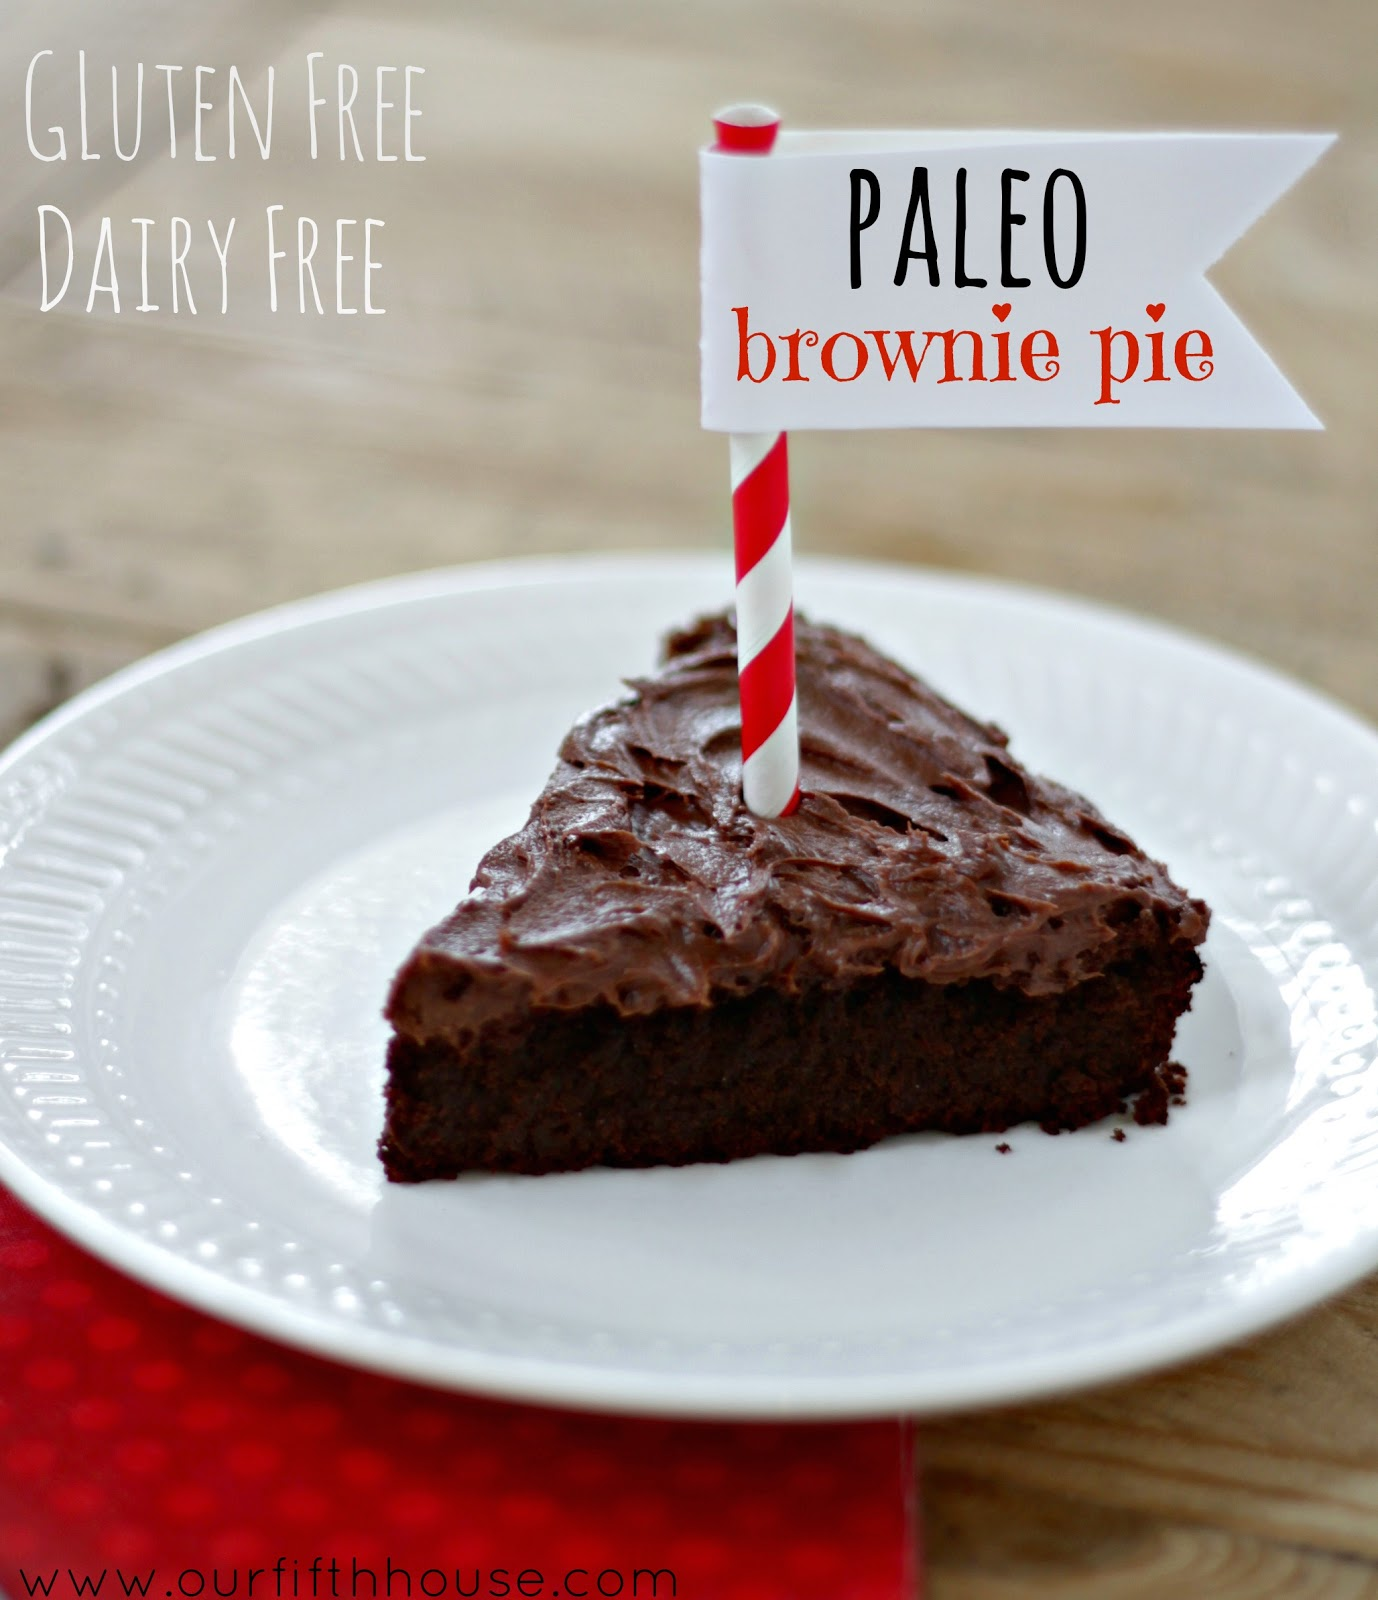 Paleo Baking Company Yummy Healthy And Easy Baking Plus A